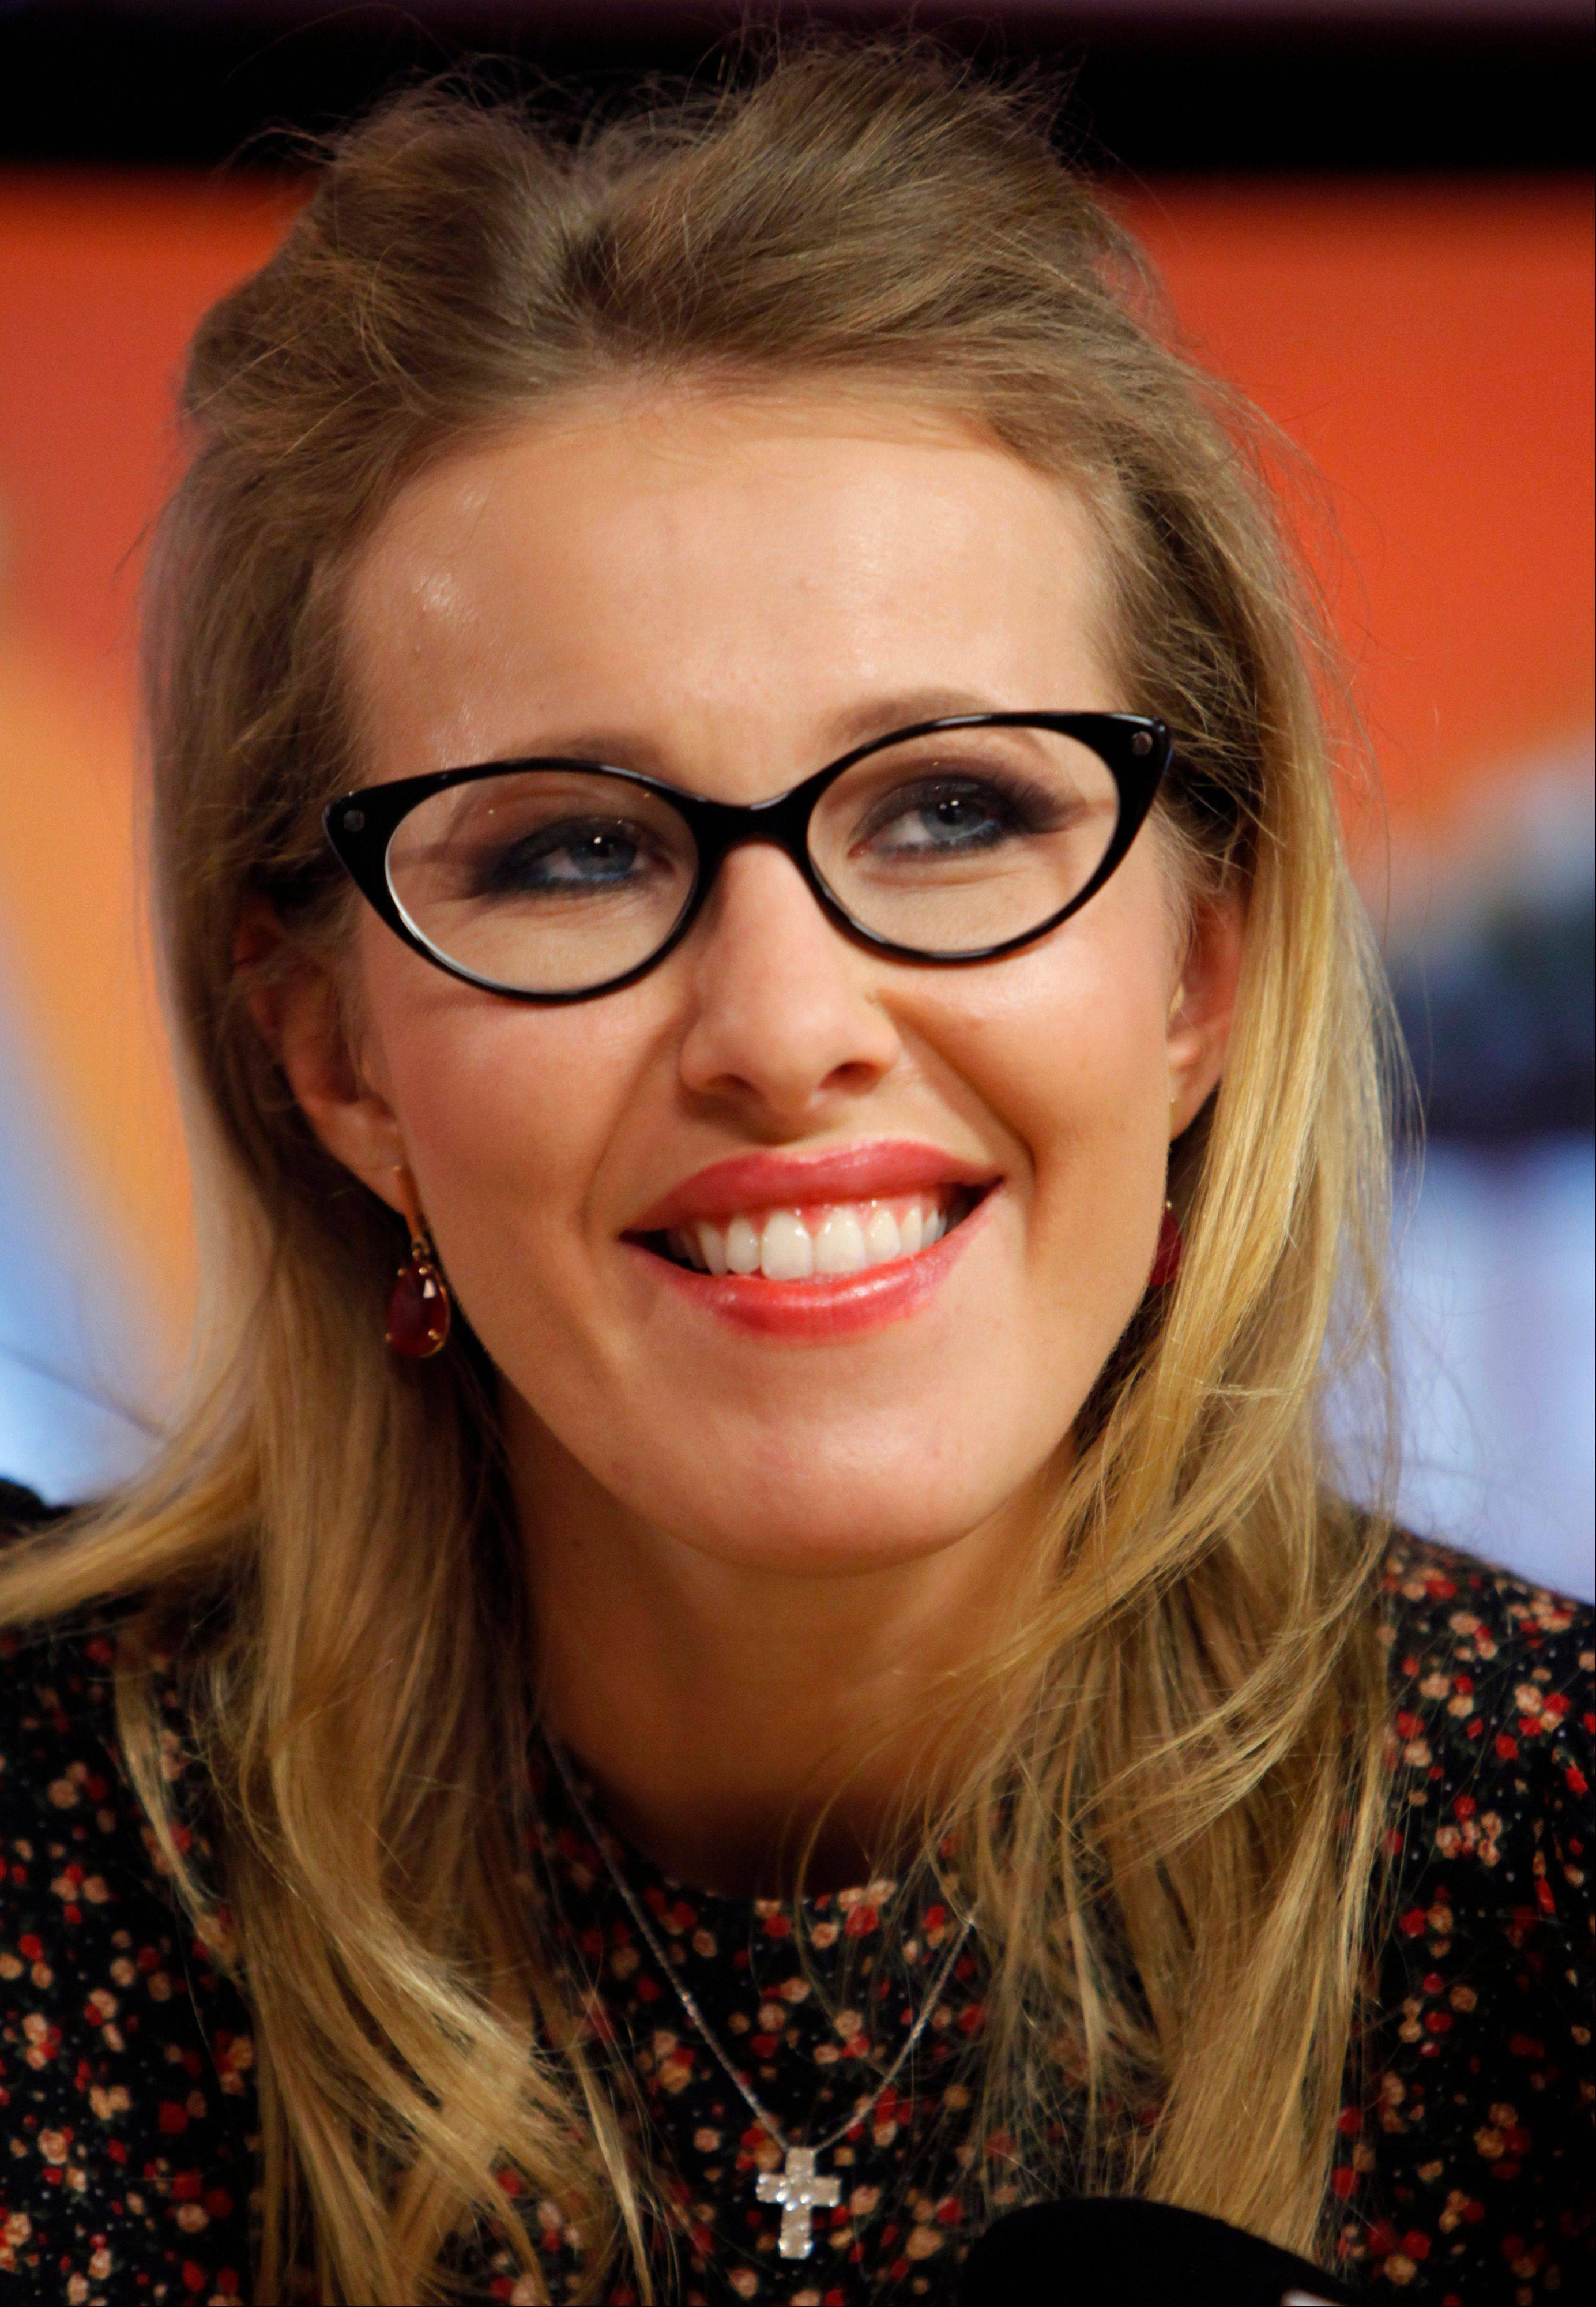 Associated Press/Jan. 18, 2012Russian socialite and TV host Kseniya Sobchak, daughter of the late St. Petersburg mayor, Anatoly Sobchak, speaks to journalists during her interview at a radio station in Moscow.